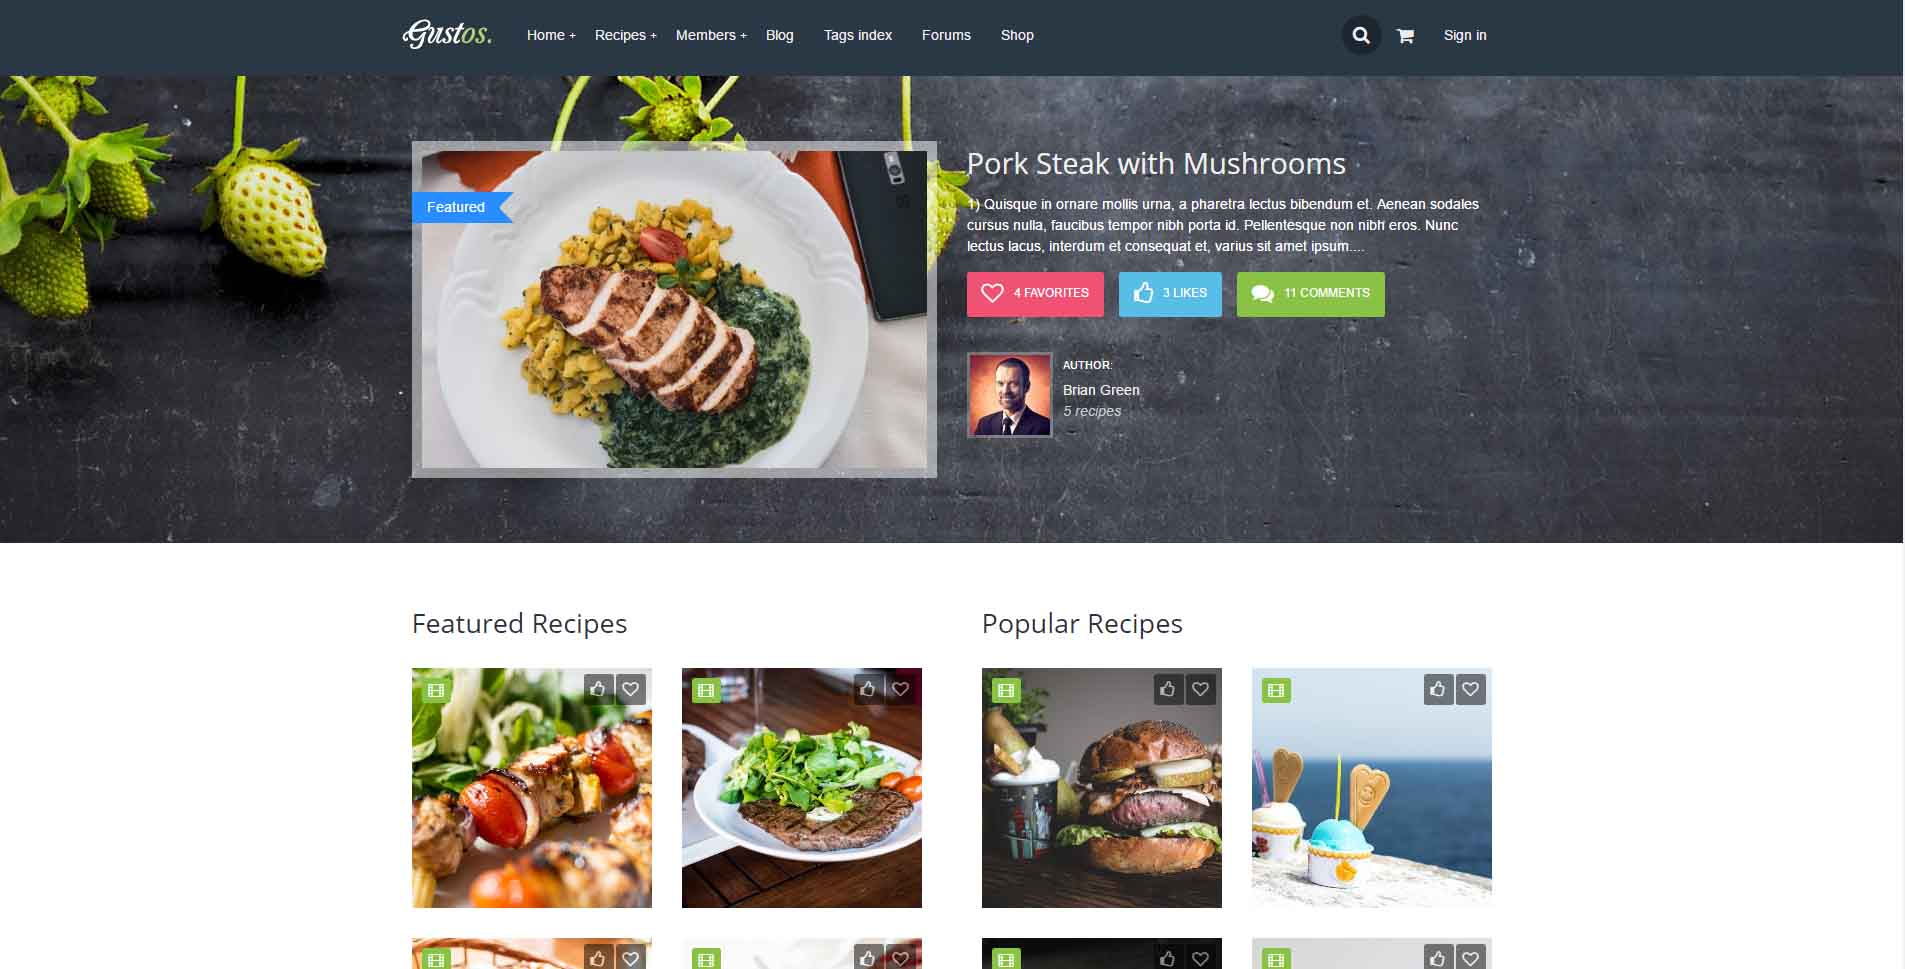 11 best food blog wordpress themes premium wordpress themes the best part of this wordpress food blog theme is user generated content of cooking recipes possibility start building a community of food lovers and forumfinder Gallery